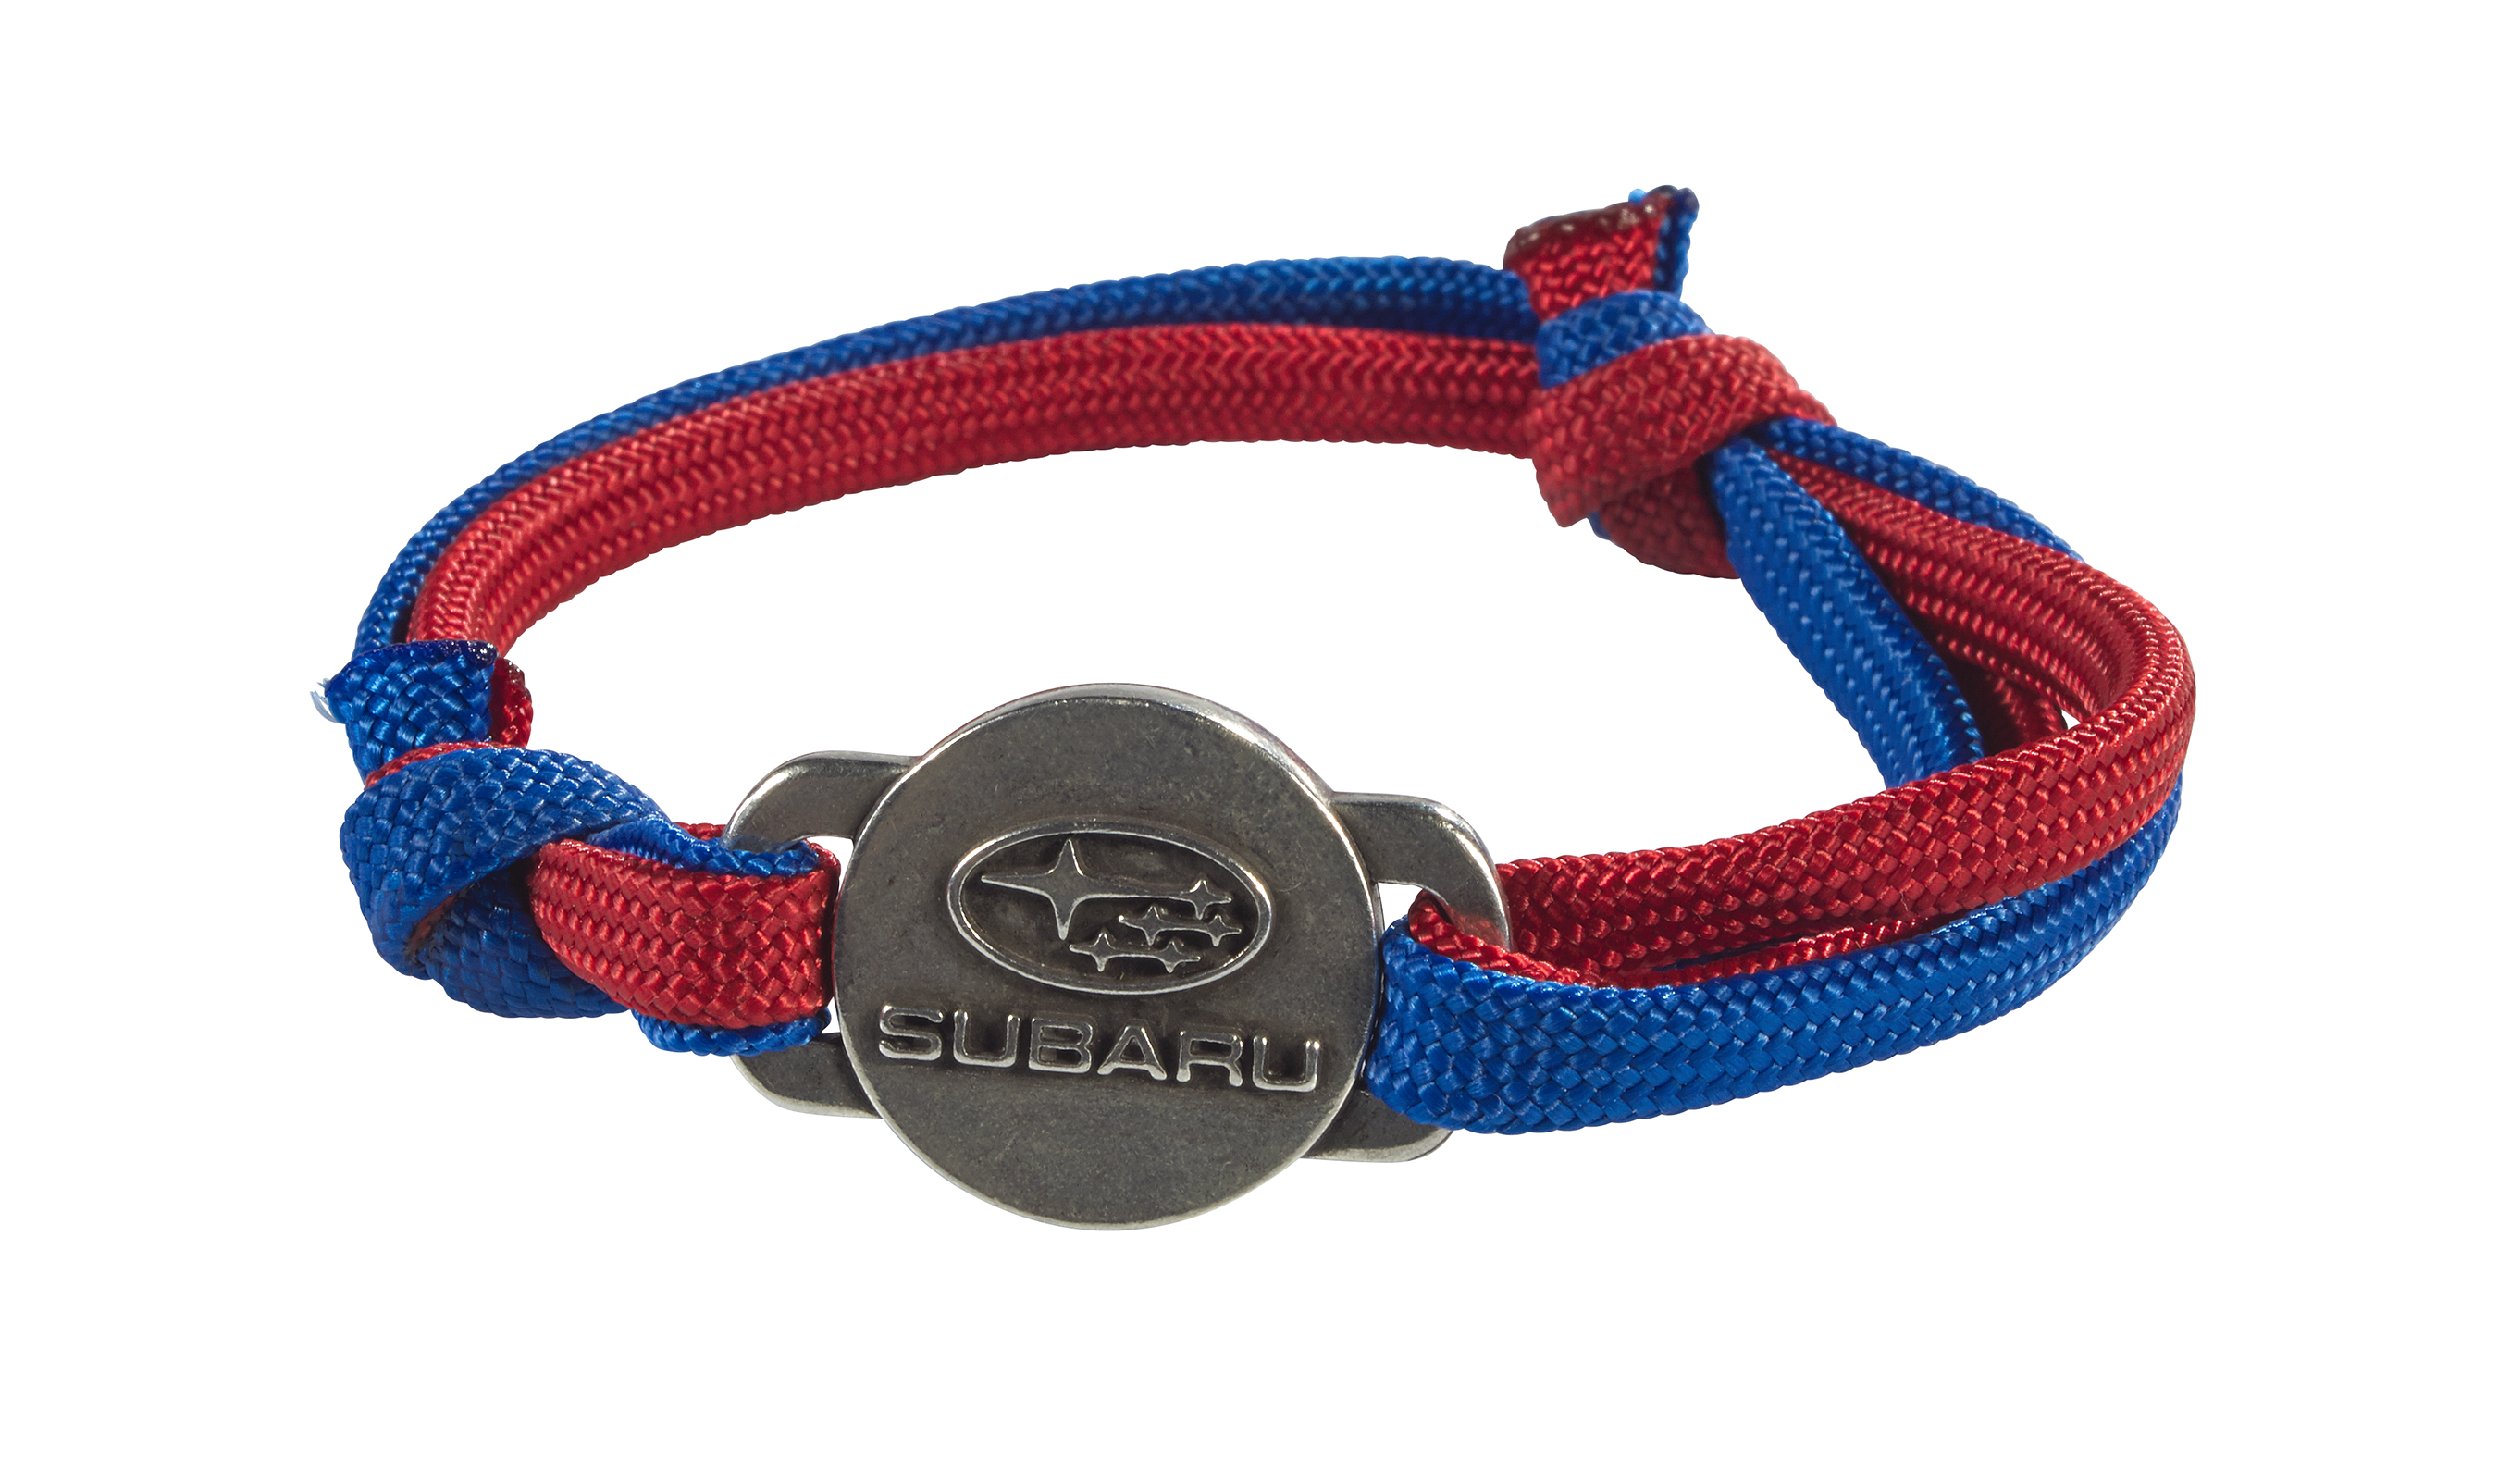 Those who write a message of hope will receive an awareness bracelet to help share LLS and Subaru's goal of providing hope and care, one gesture at a time.